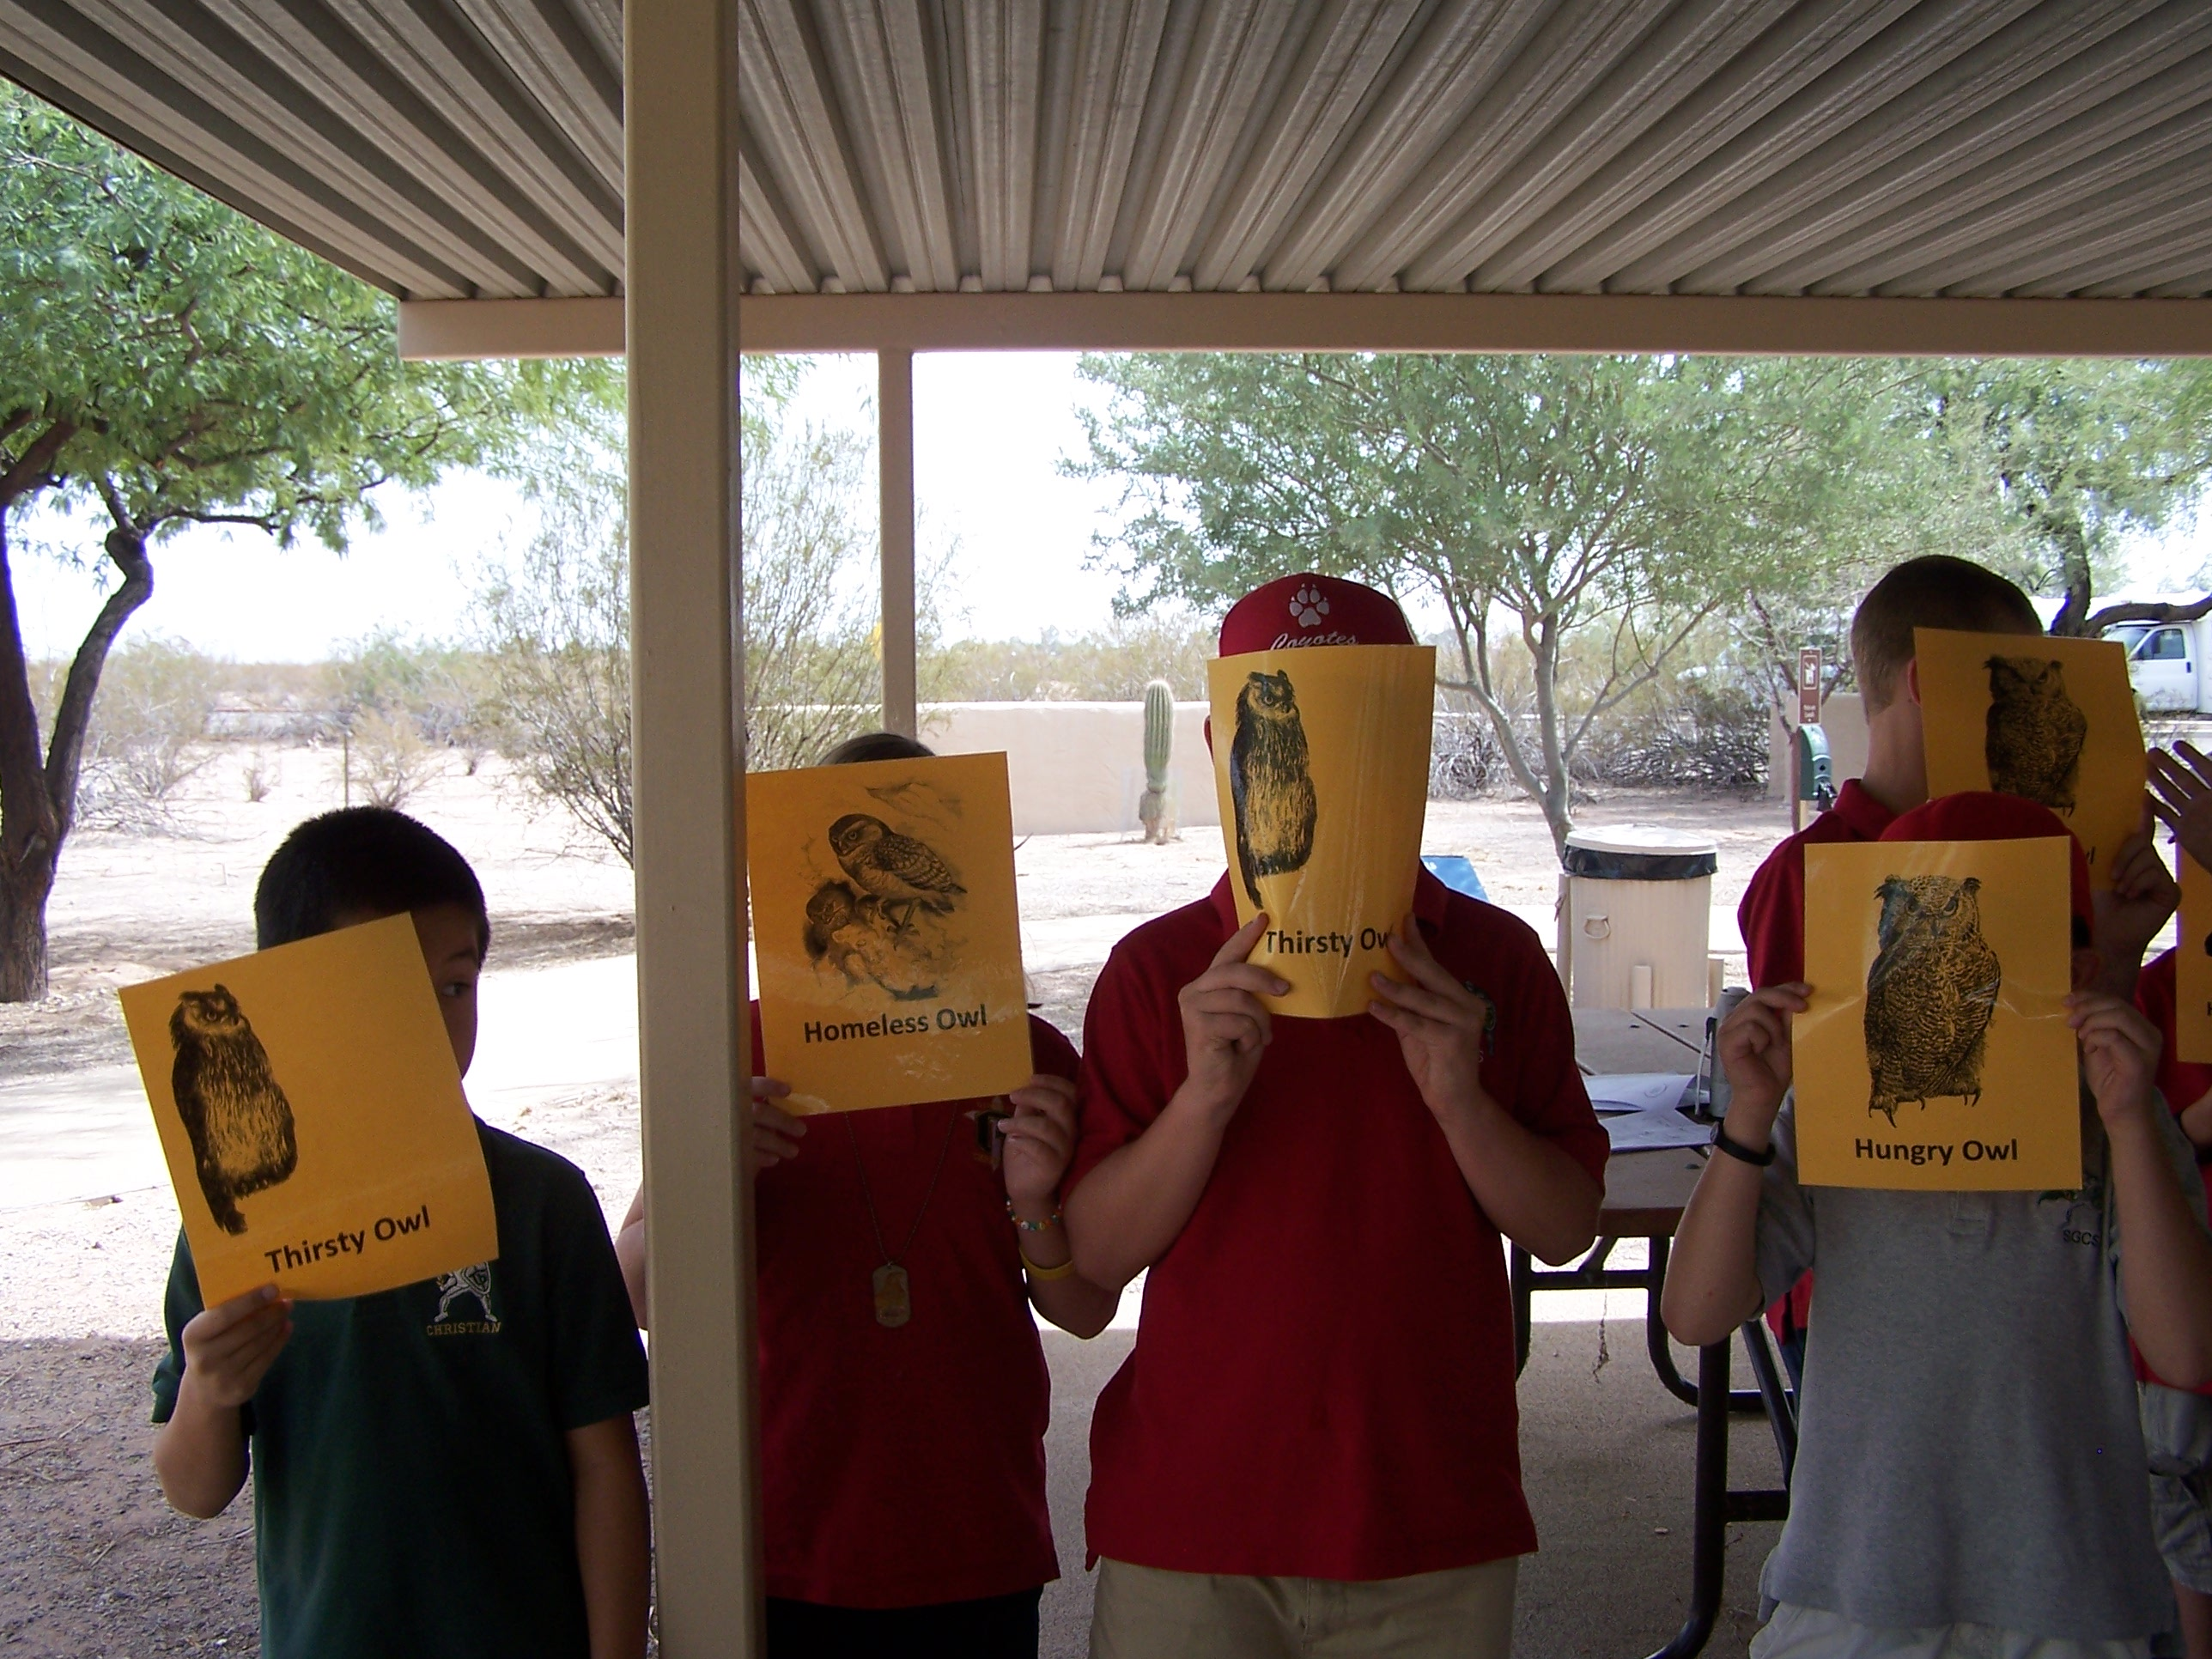 students cover their faces with gold cards explaining what resource they need (water, home, or food)